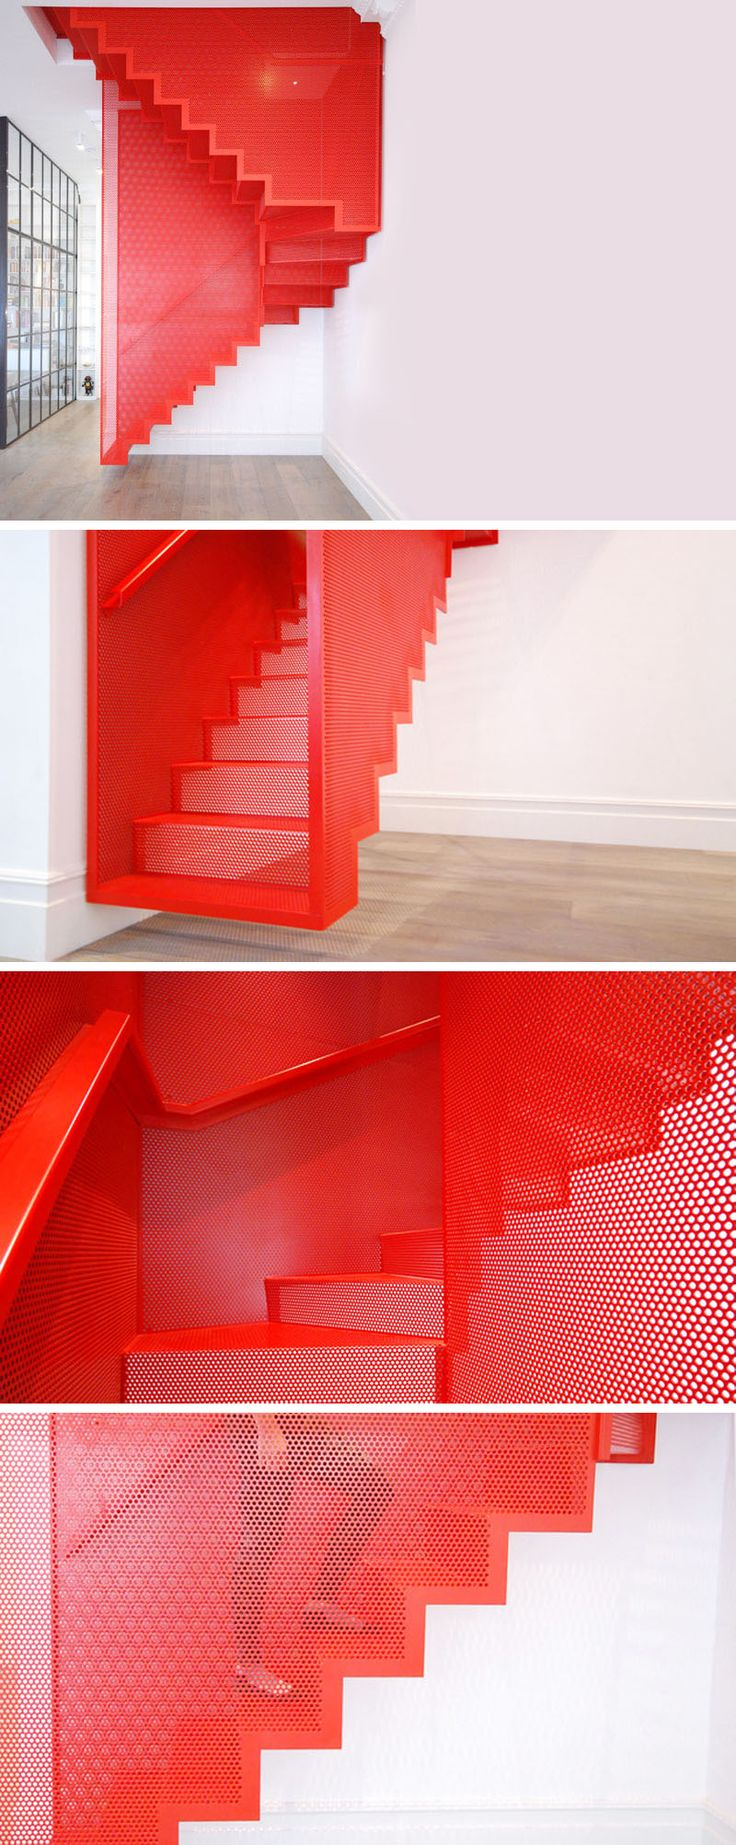 Perforated Steel Suspended Staircase by Michaelis Boyd Associates, interesting comparison to installation by Do Ho Suh at the Tate Modern Gallery